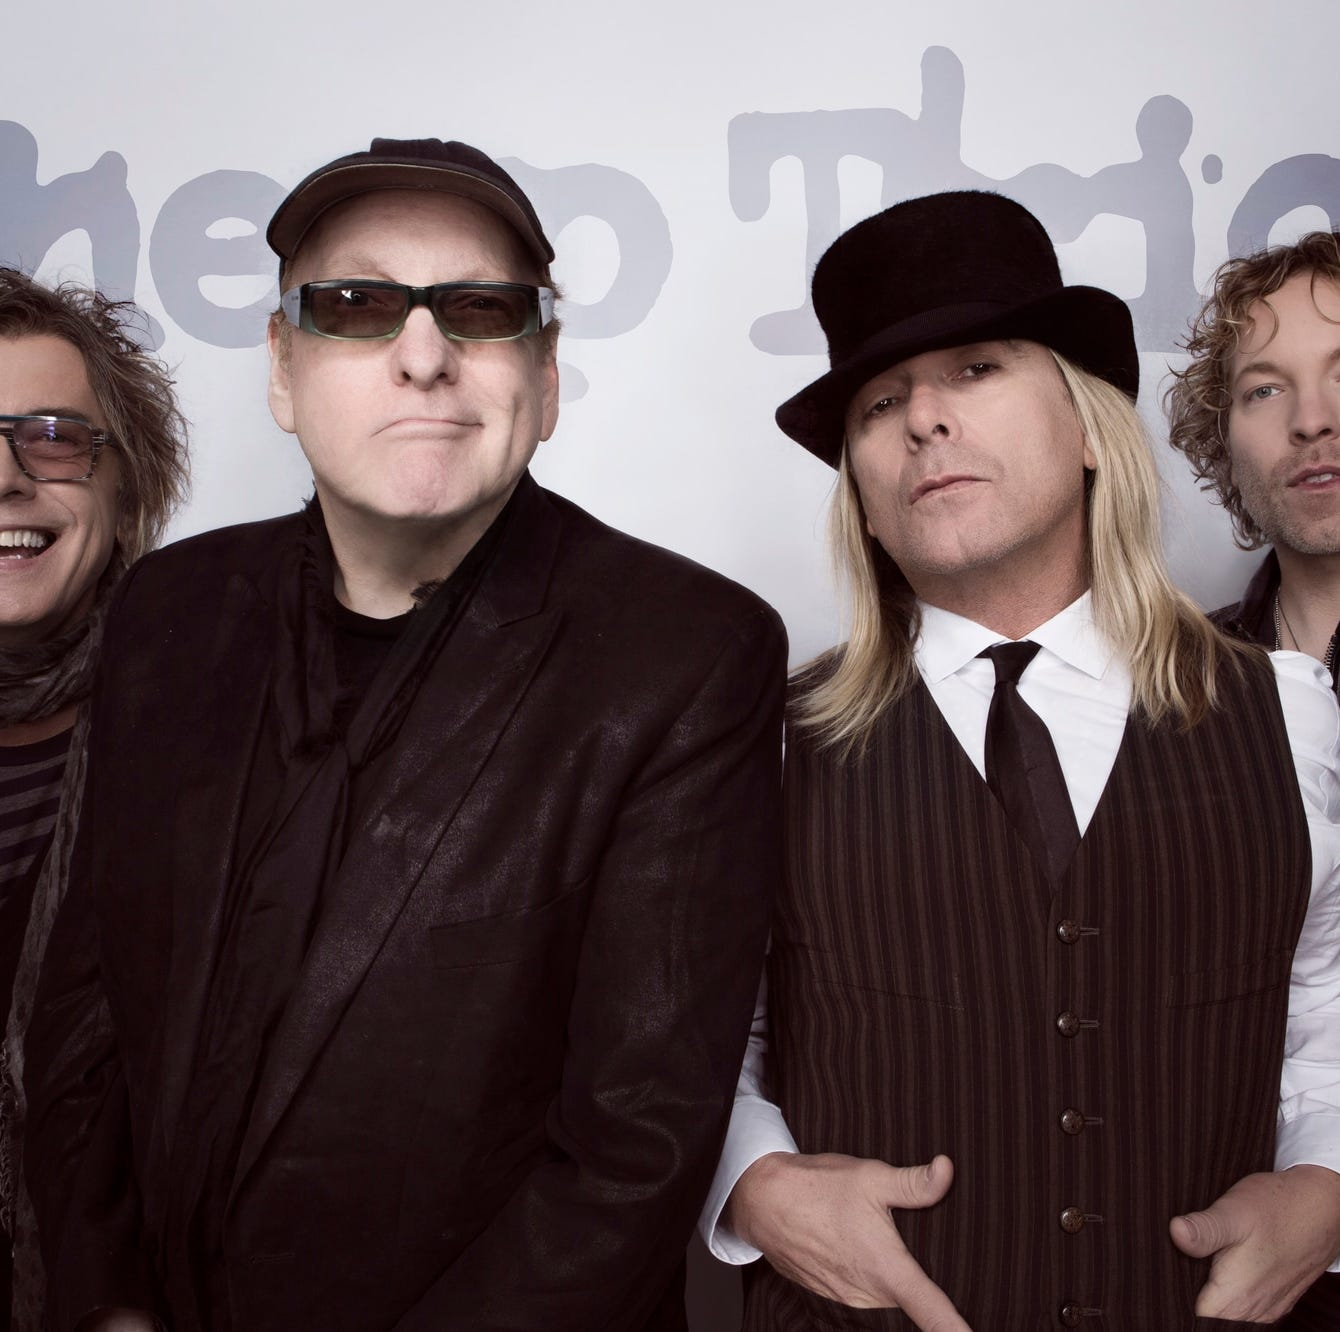 Cheap Trick's Rick Nielsen on knocking out the bar ceiling in Green Bay in '70s